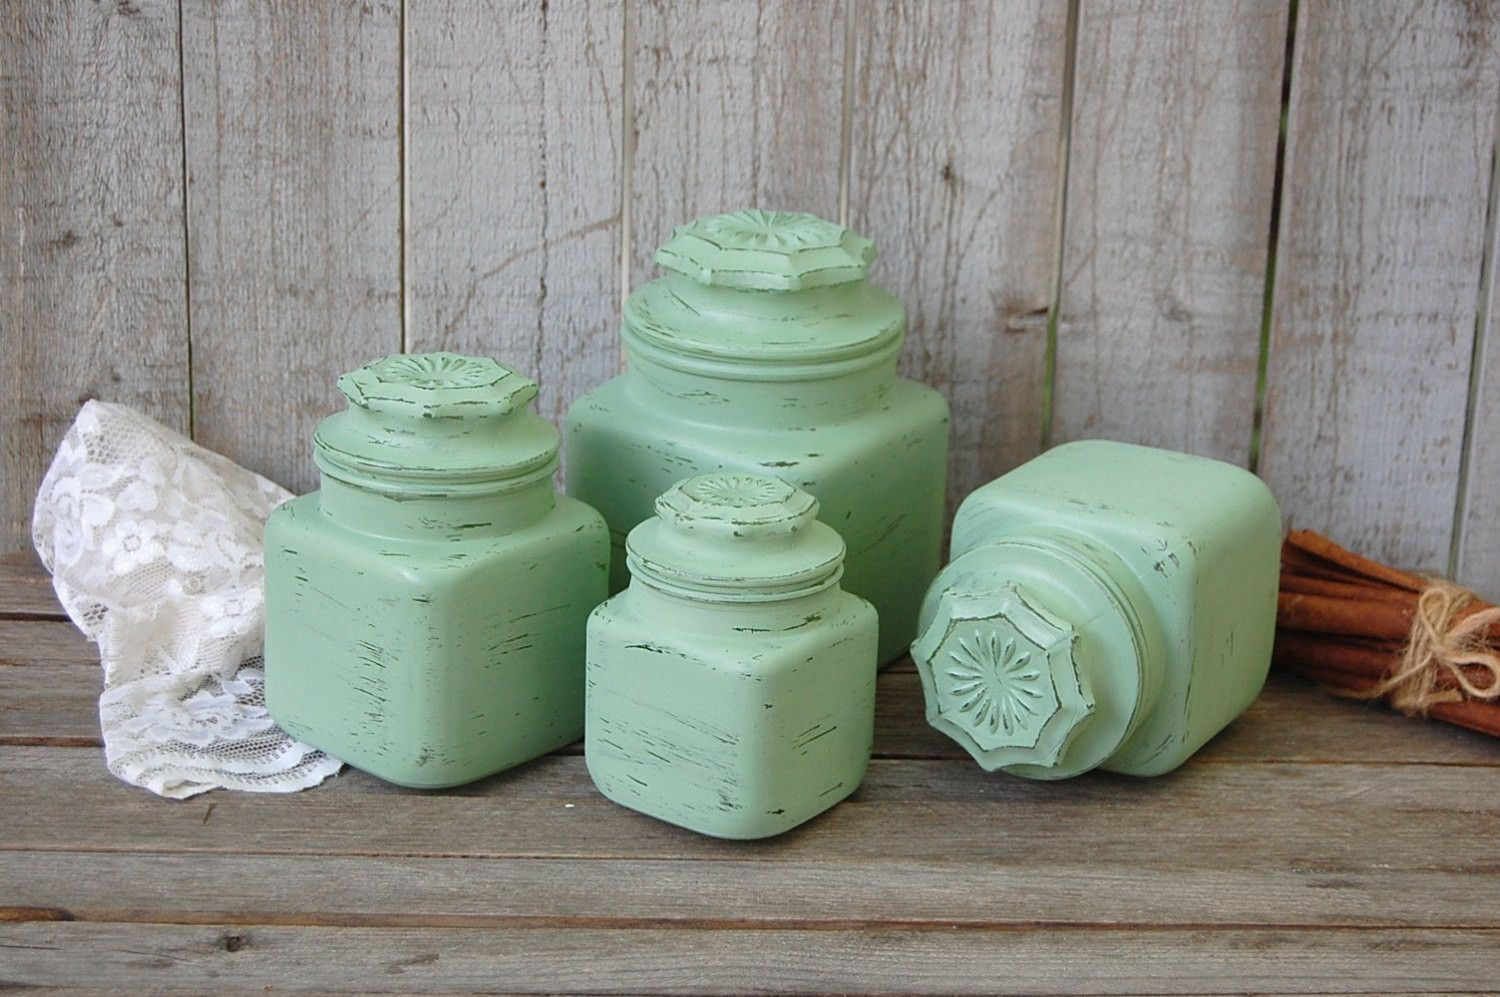 Kitchen canisters glass  Shabby chic kitchen canister set  Products  Pinterest  Kitchen